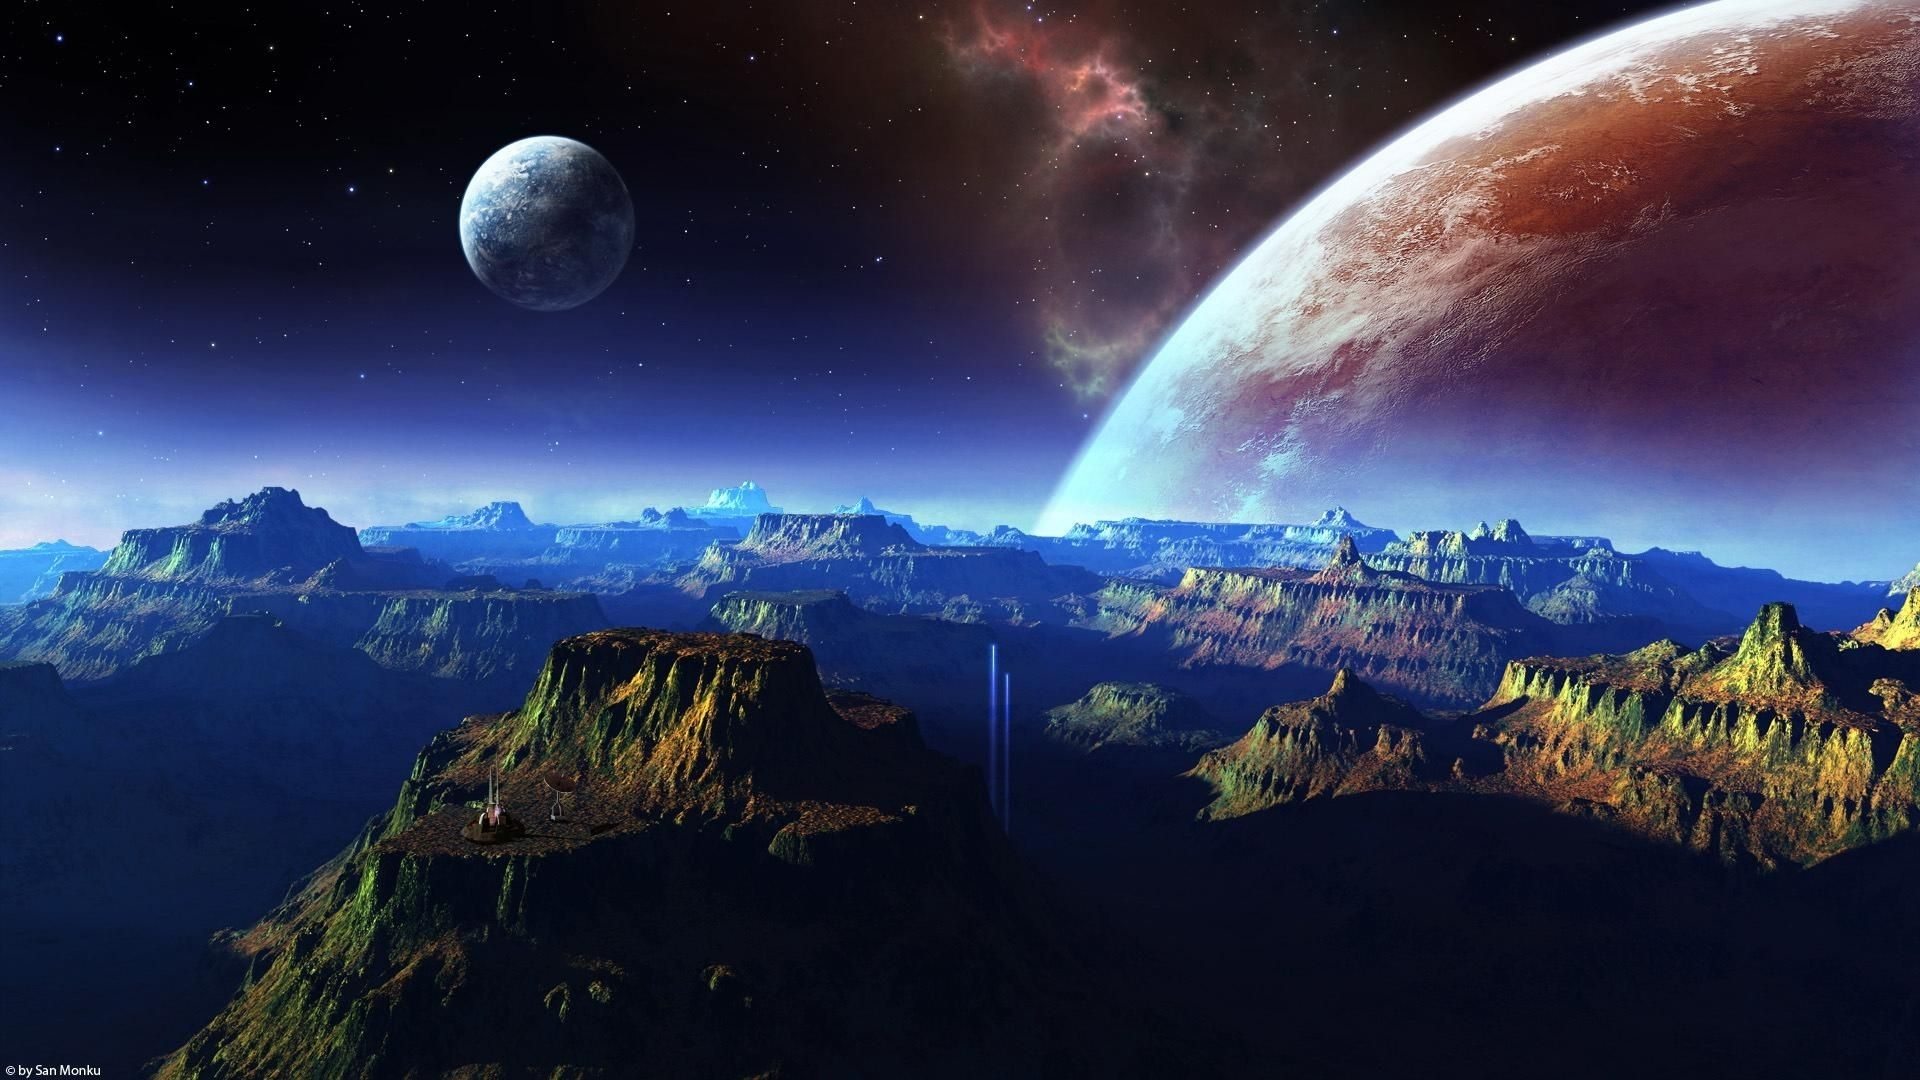 space hd wallpapers 1080p - wallpaper cave   epic car wallpapers